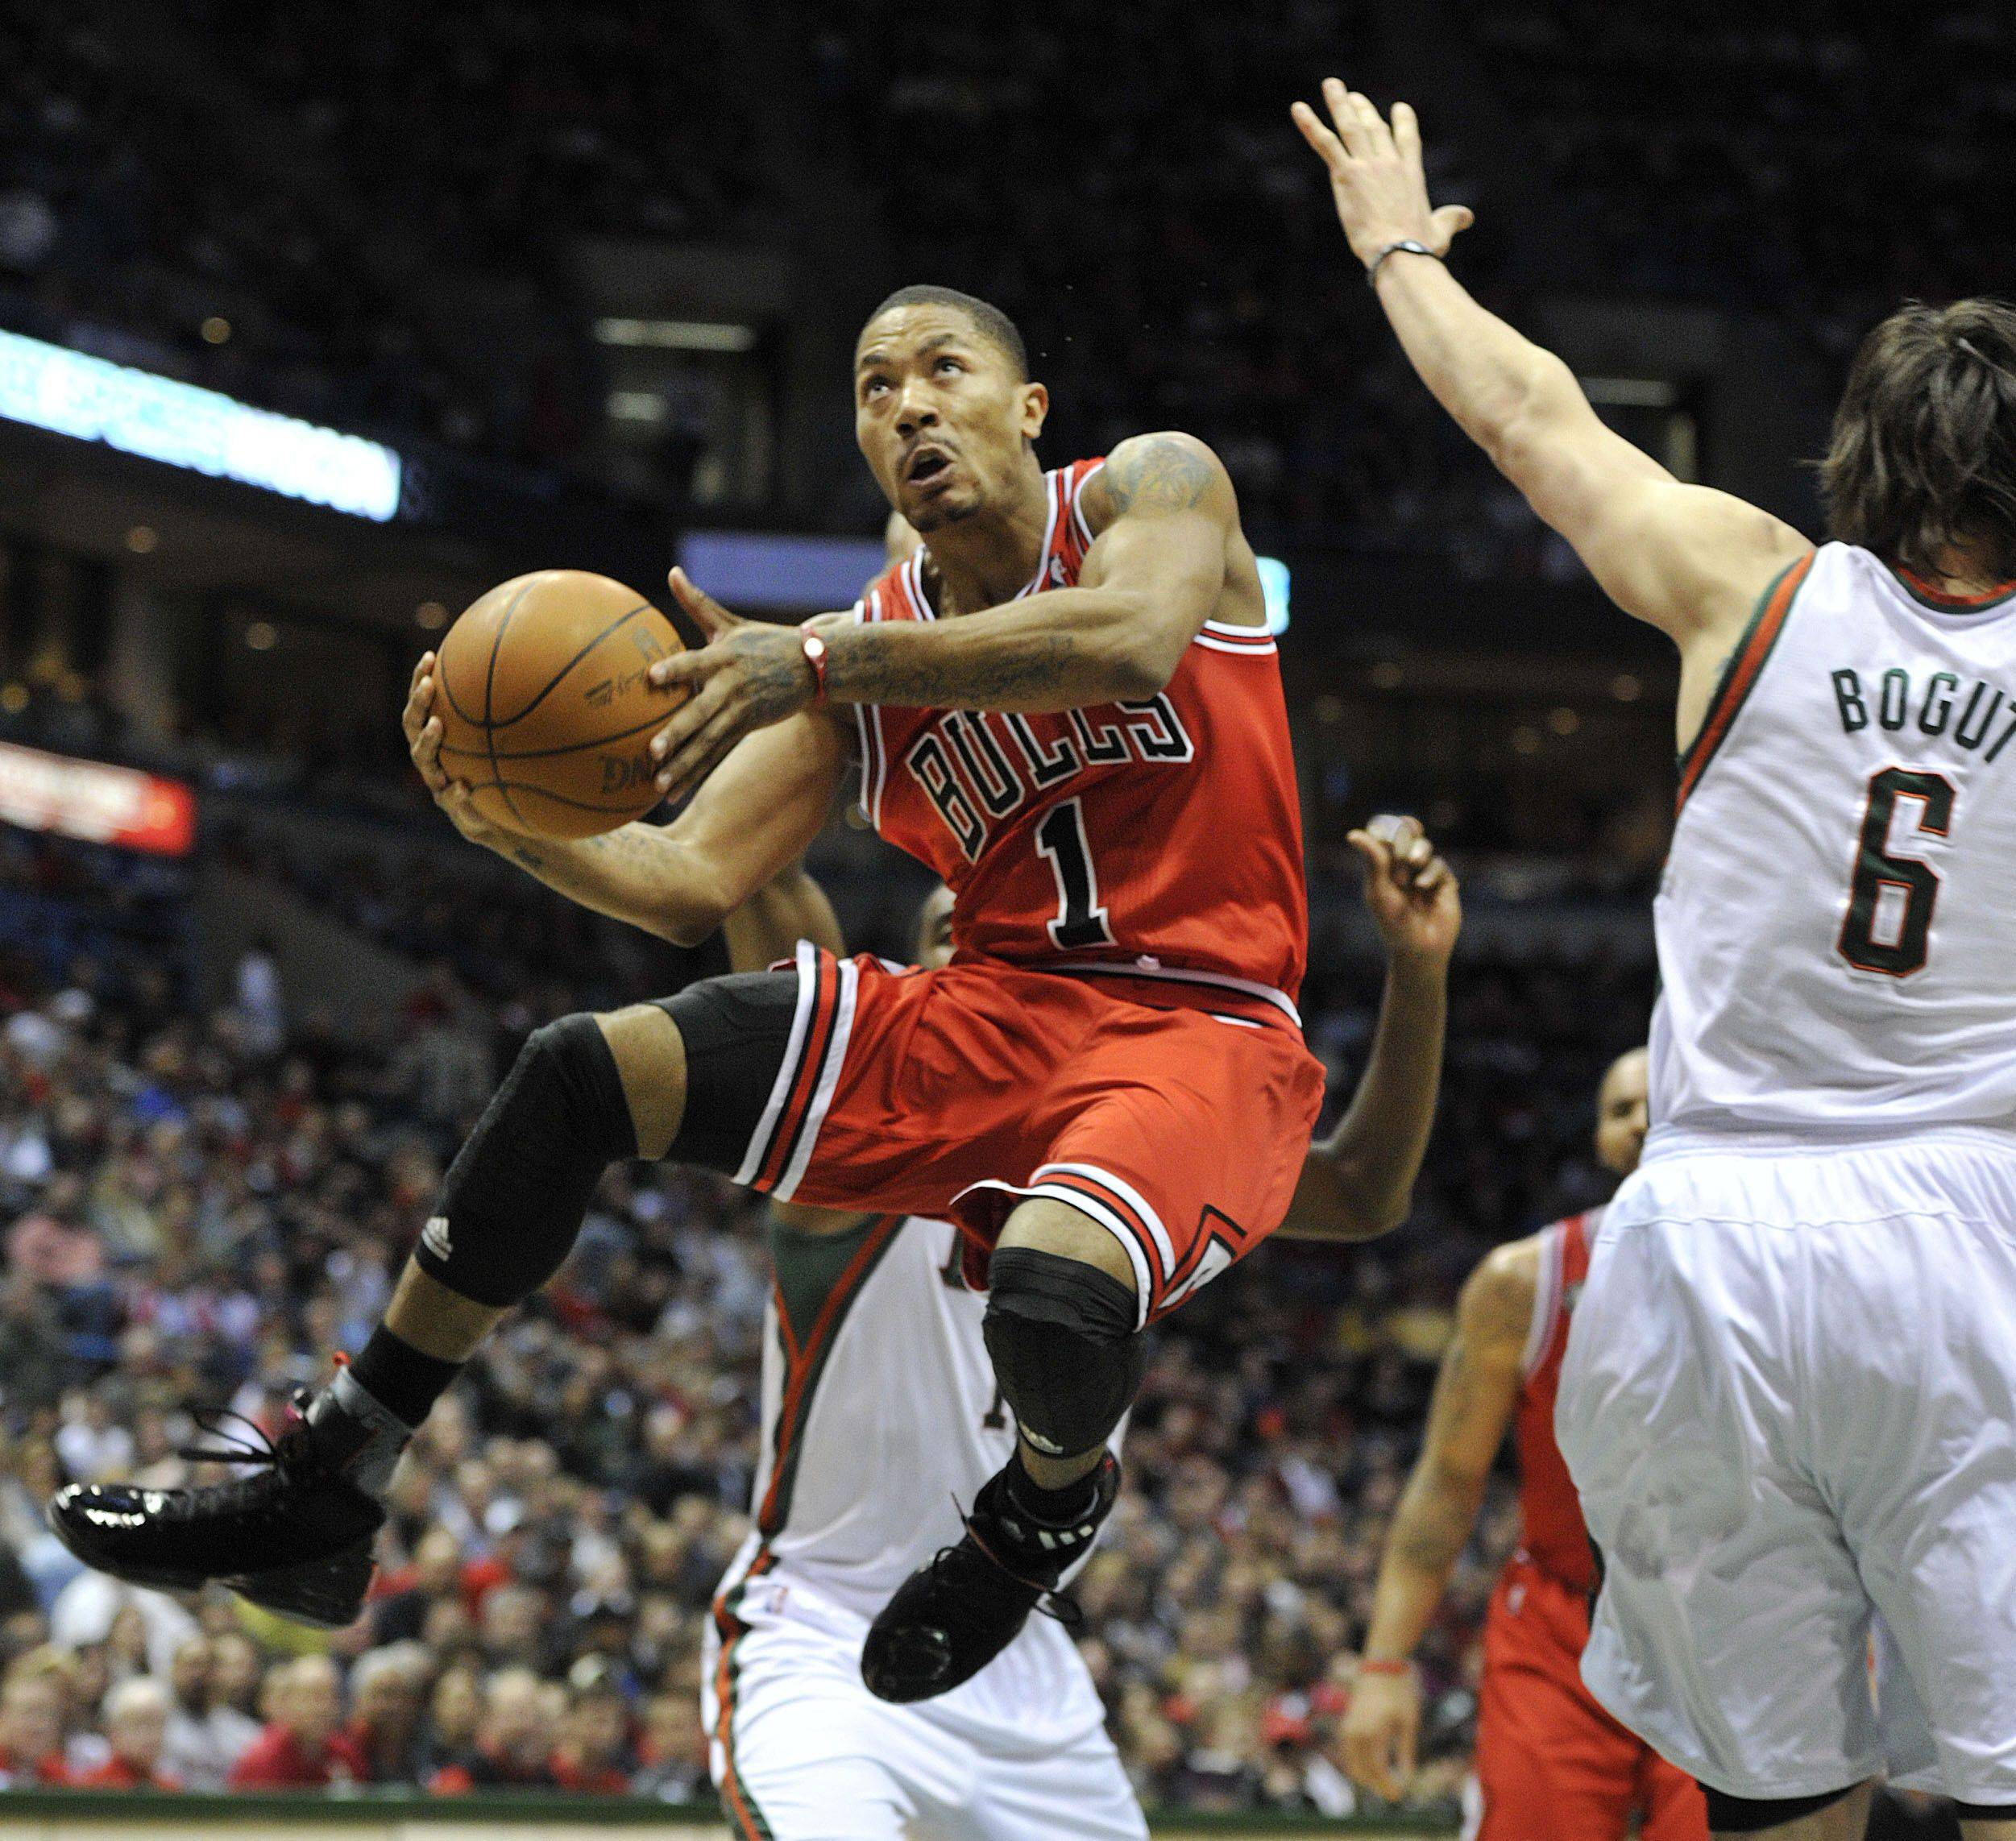 Chicago Bulls' Derrick Rose (1) drives to the basket around the Milwaukee Bucks' Andrew Bogut (6) during the first half of an NBA basketball game Saturday, March 26, 2011, in Milwaukee.